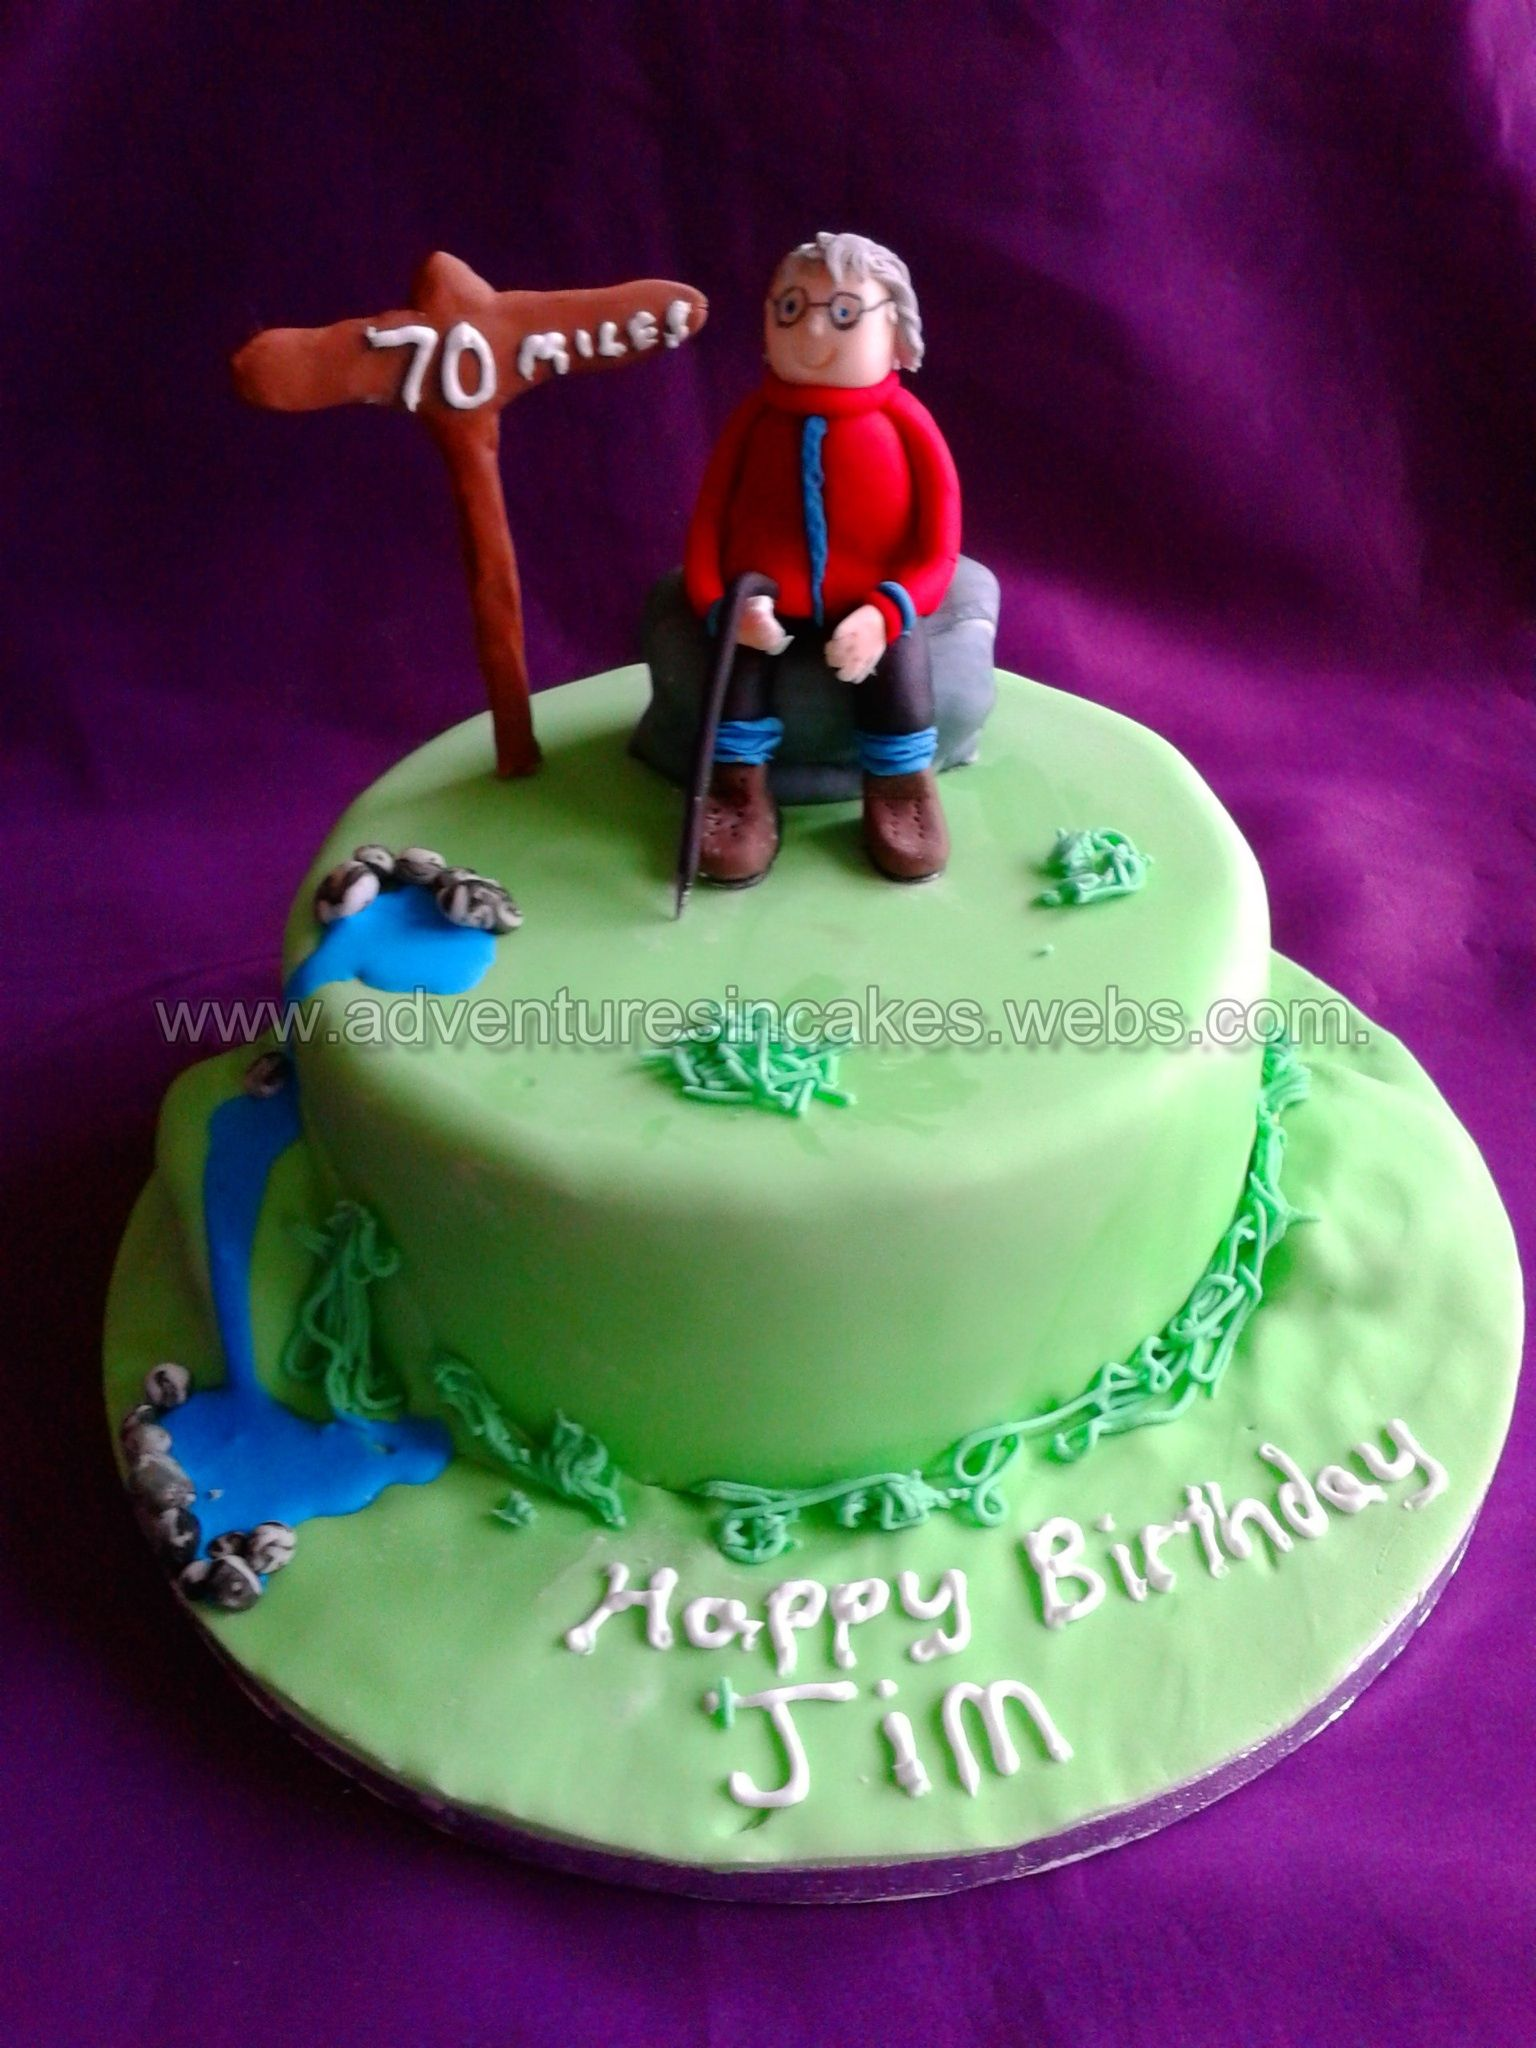 Hill Walking Cake Birthday Cake Cake Retirement Cakes